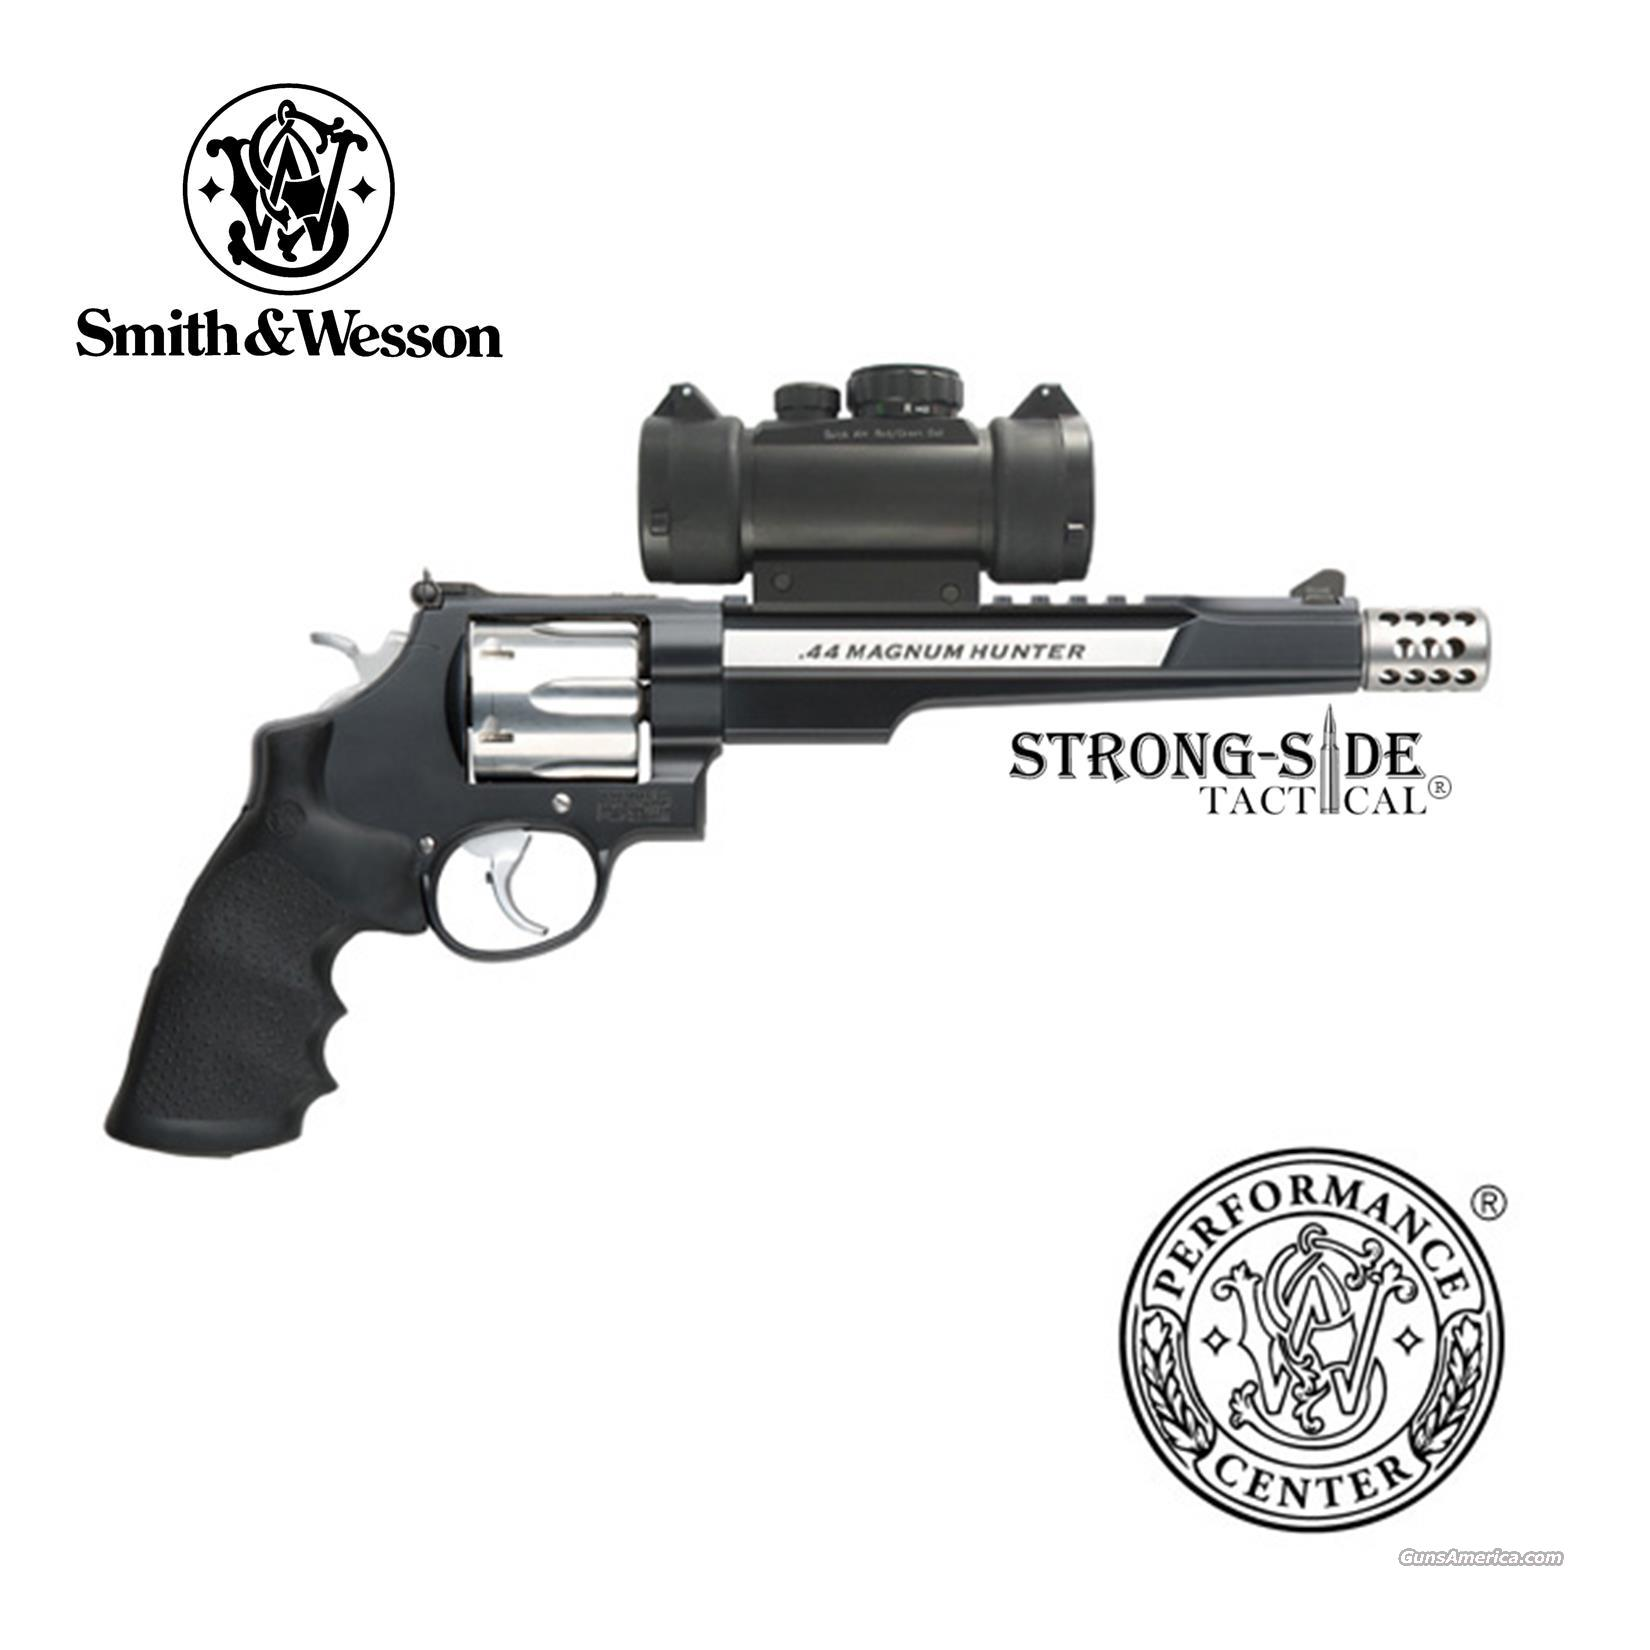 "Smith & Wesson Model 629 Hunter 7.5"" .44 Magnum, 6 Round Capacity w/red dot sight (Performance Center)  Guns > Pistols > Smith & Wesson Revolvers > Performance Center"